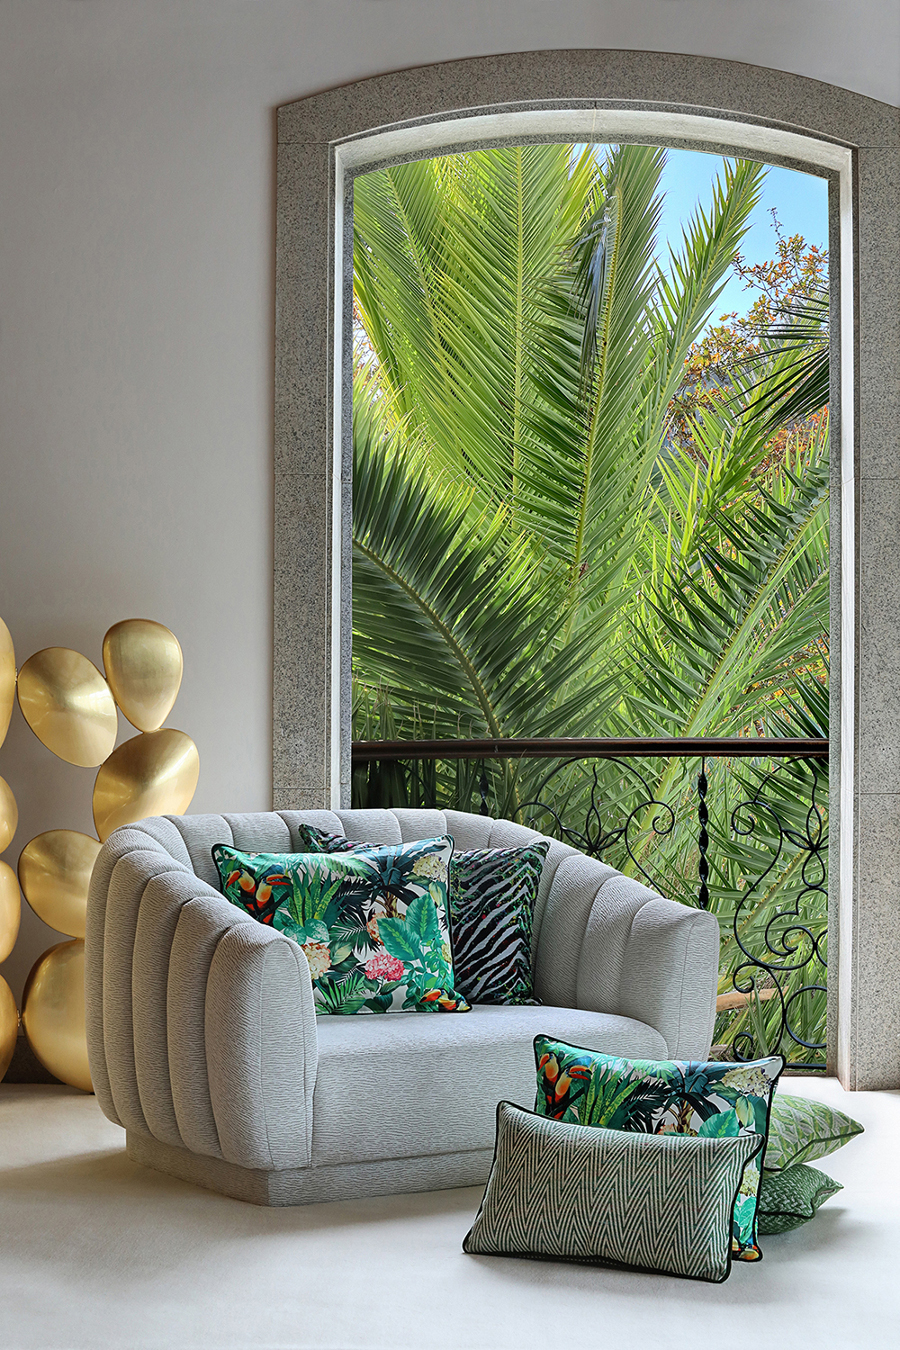 Home Decor: The Upholstery Fabrics You Need This Summer upholstery fabrics Home Decor: The Upholstery Fabrics You Need This Summer Home Decor The Fabrics You Need This Summer 4